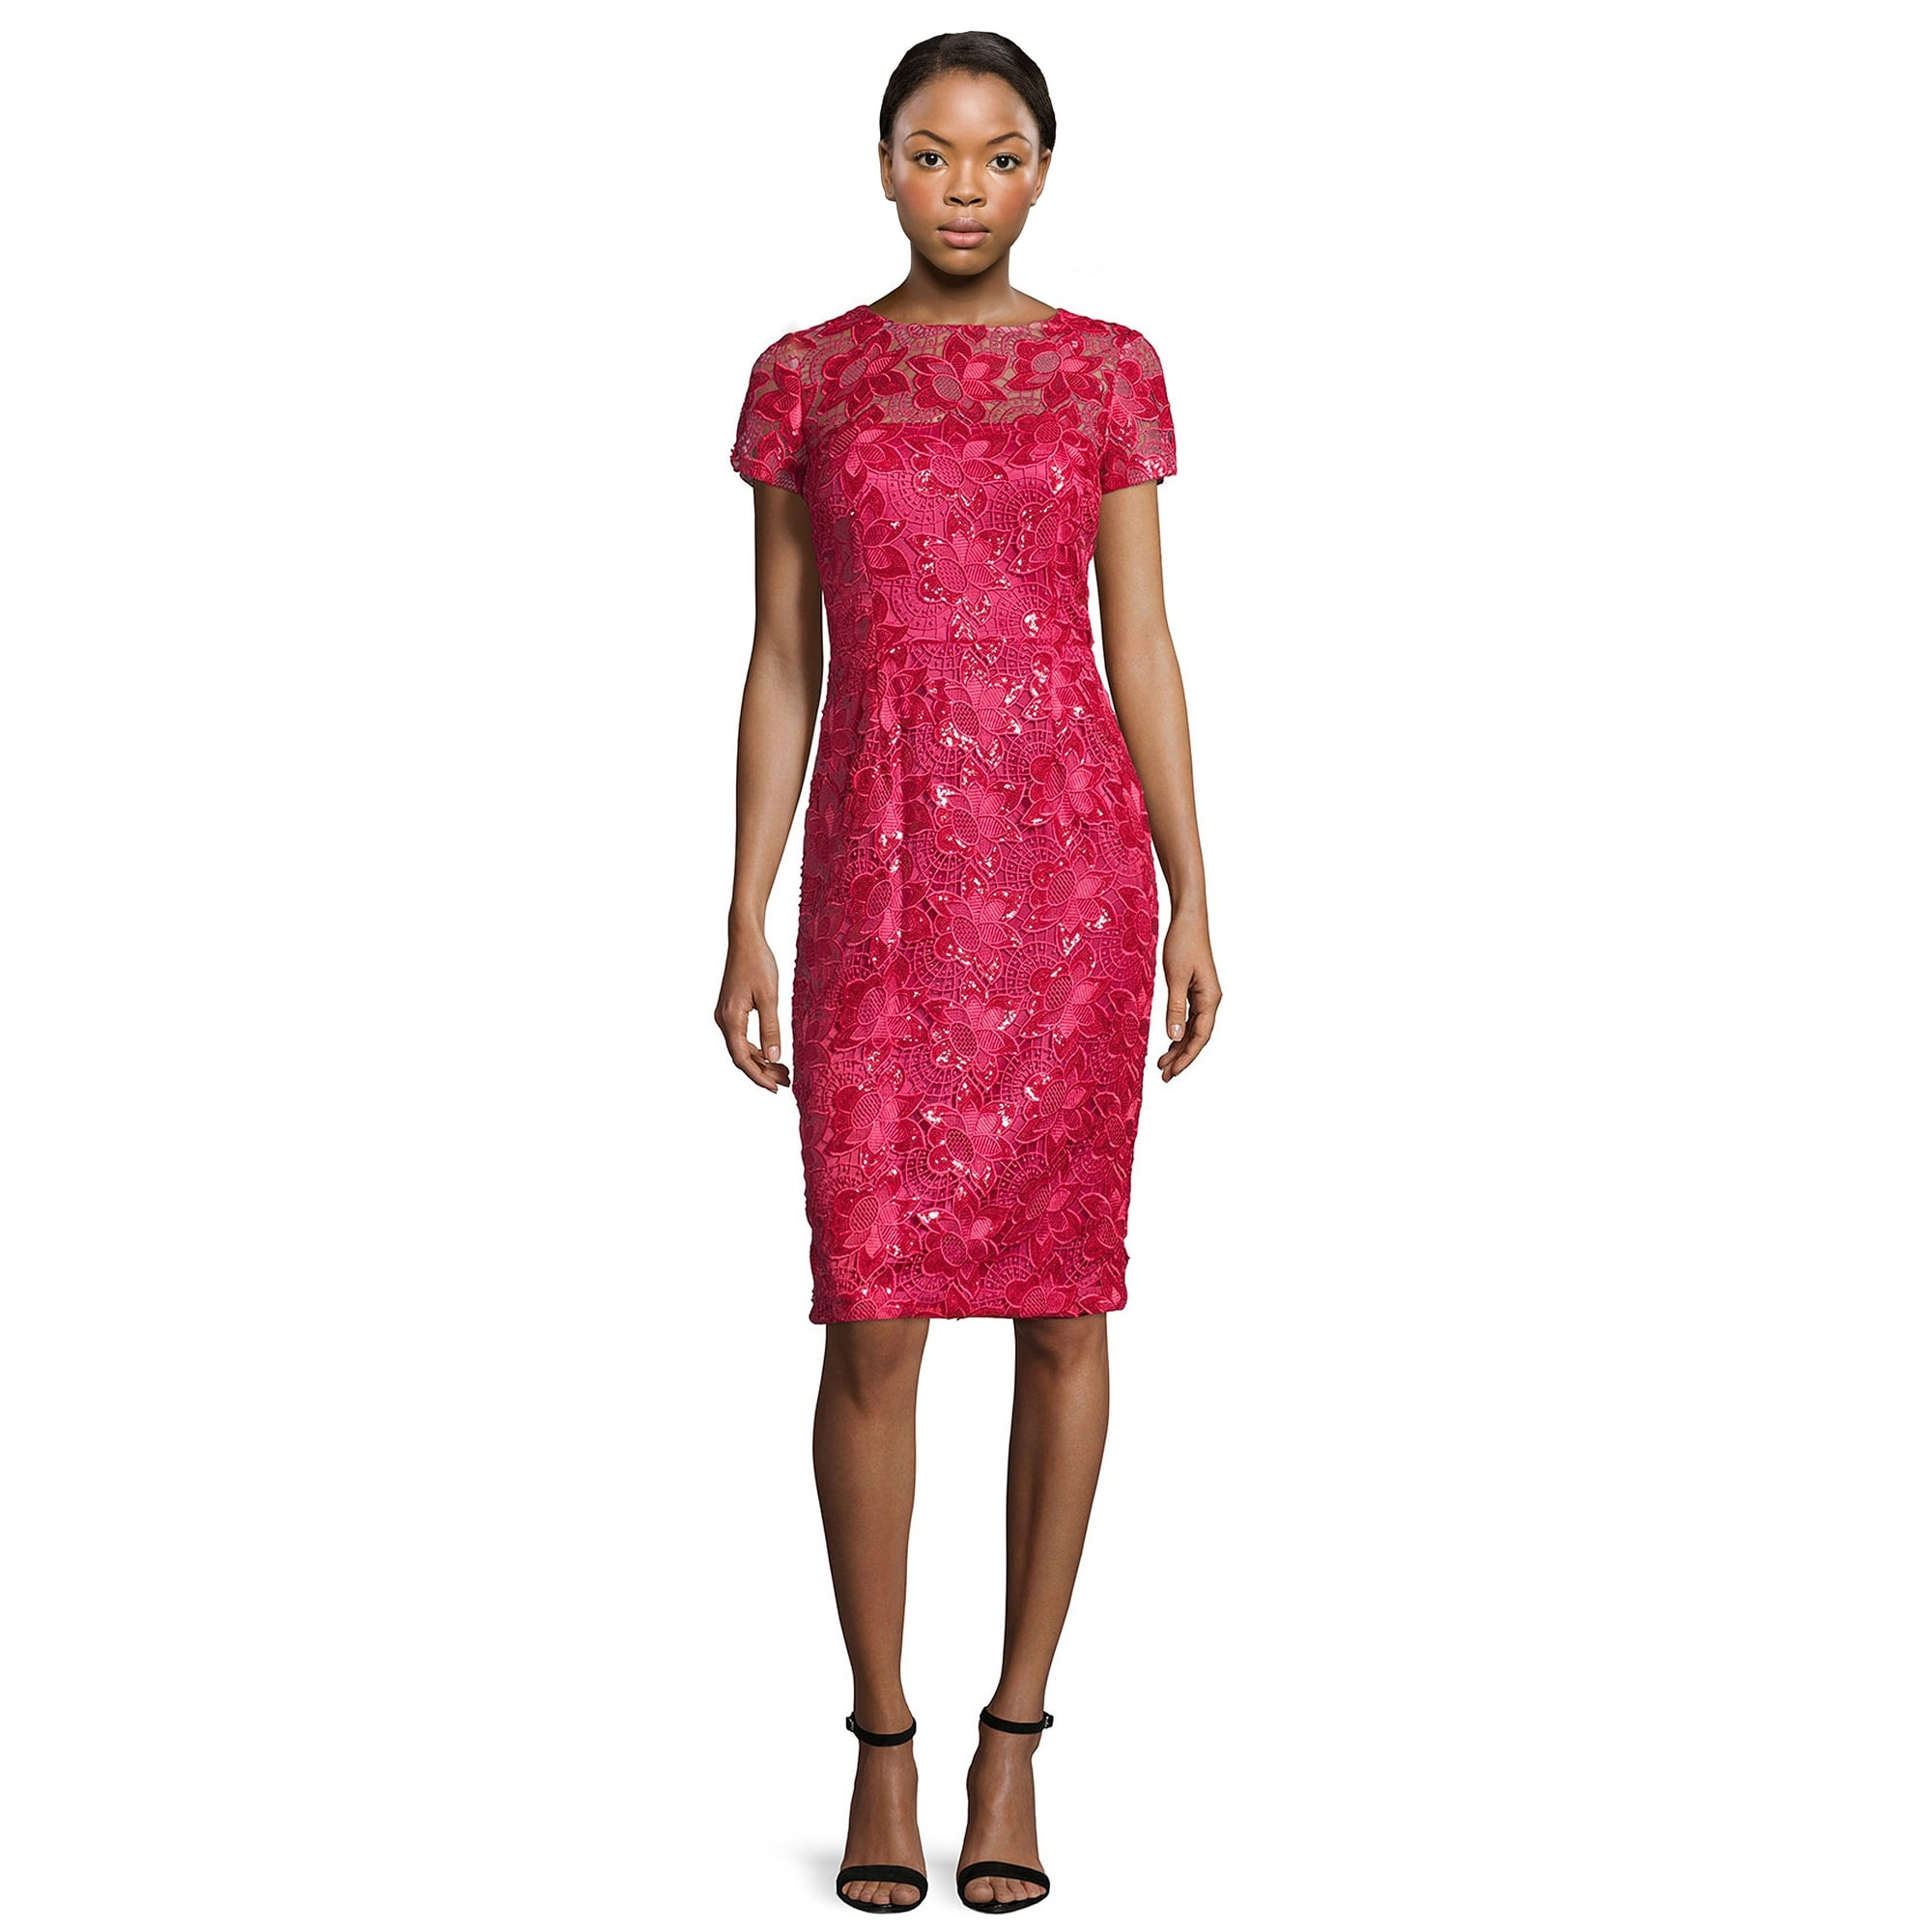 c868a03d176 Short Sleeve Lace Dress Pink - Gomes Weine AG